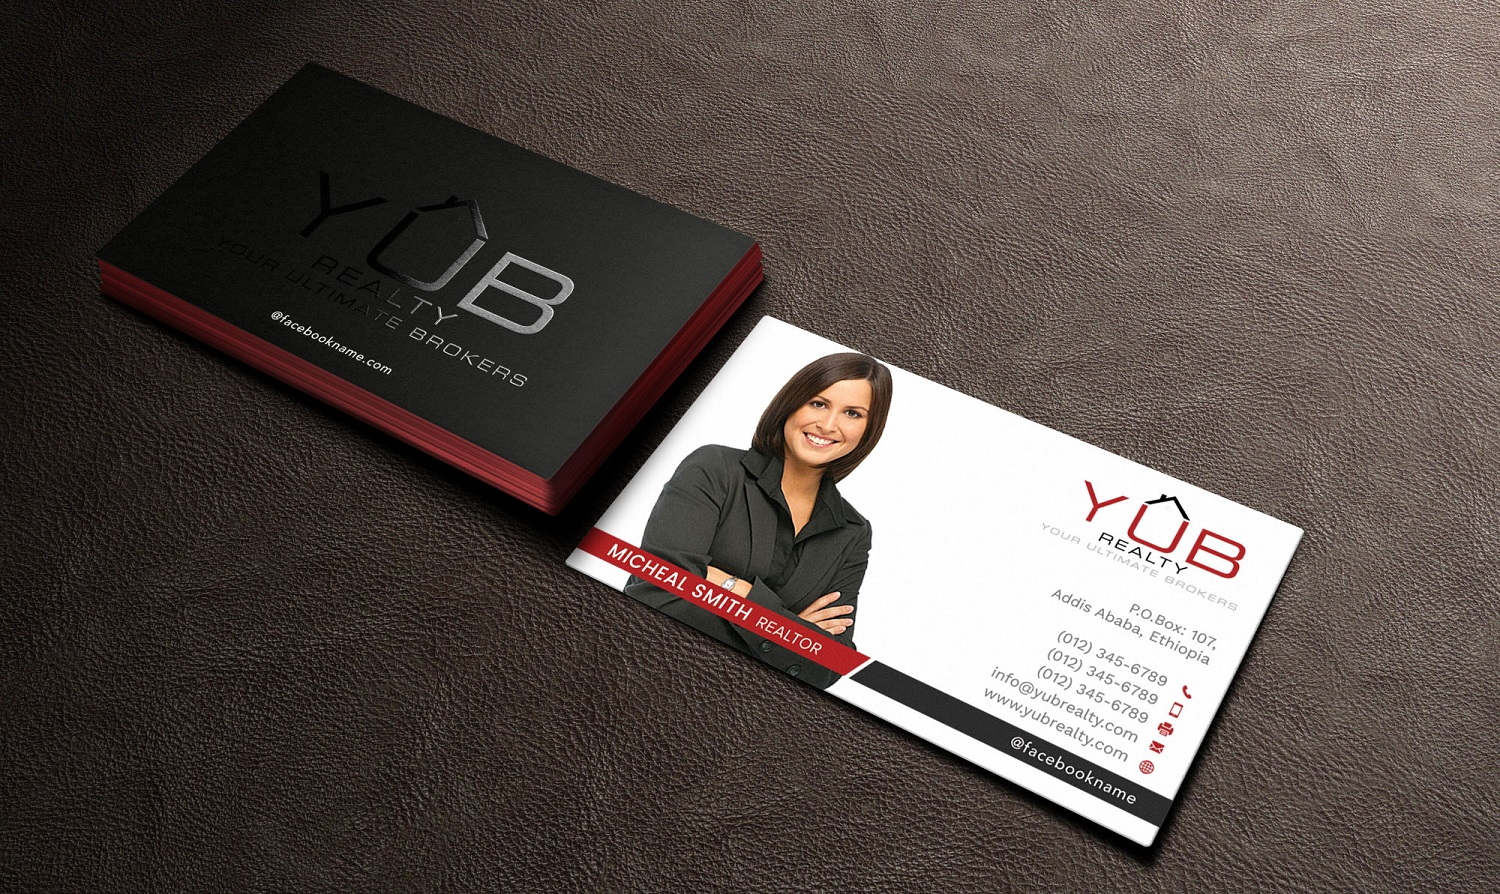 Upmarket elegant real estate agent business card design for red business card design by avanger000 for red empresario design 16884342 reheart Images